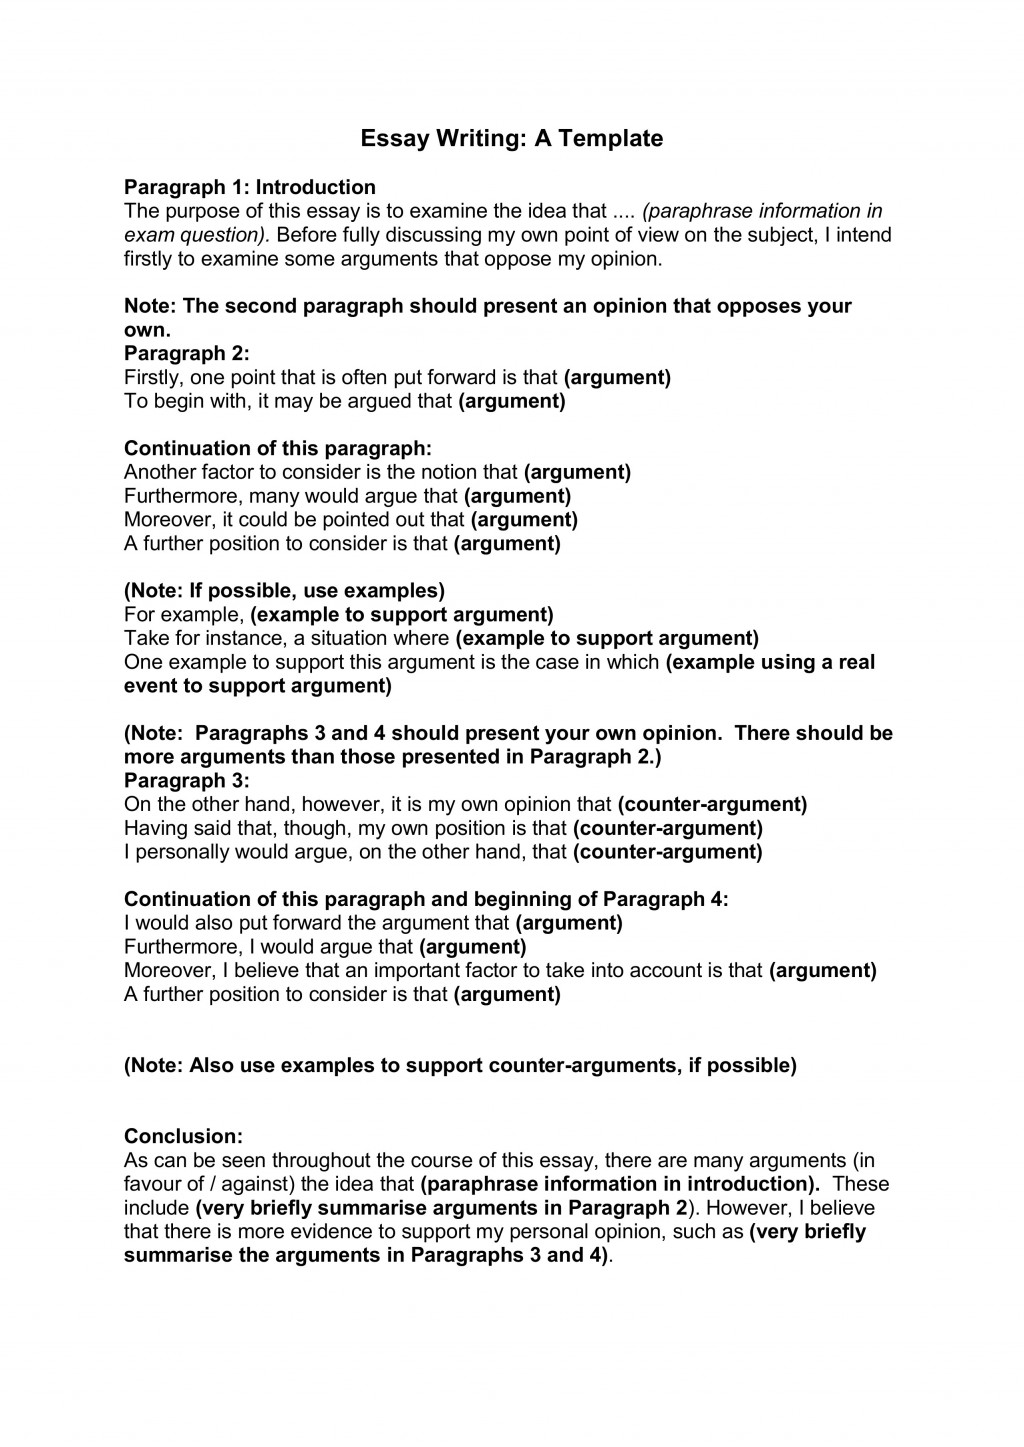 021 Essay Writing Template For Part How To Start Off Body Paragraph In An Impressive A The First Words Large